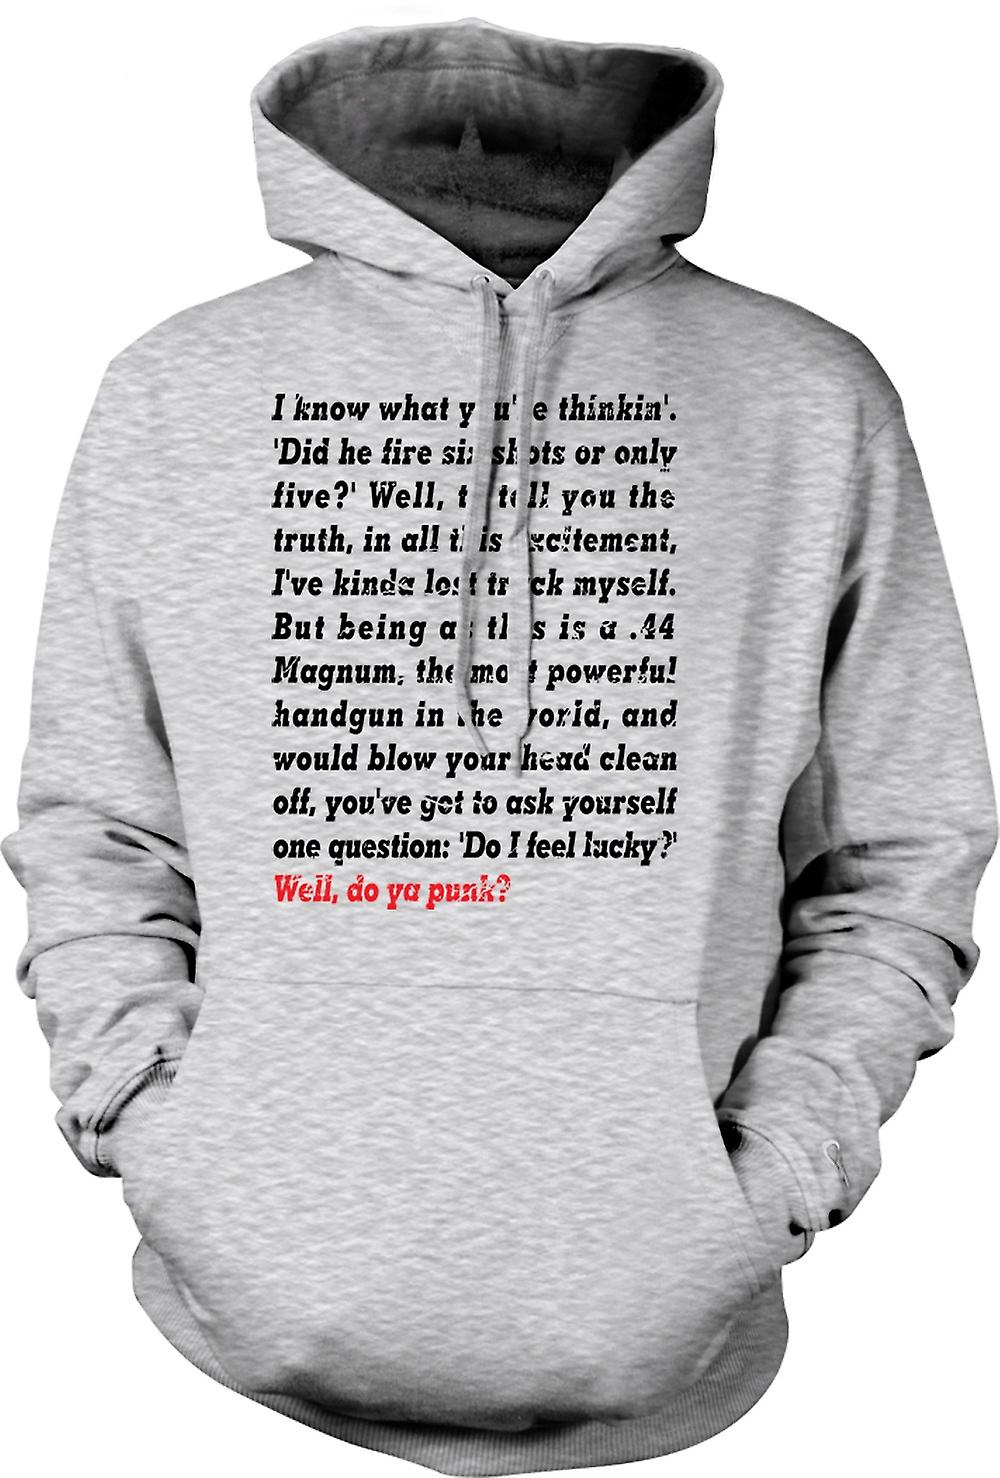 Mens Hoodie - Je sais ce que vous Thinkin - at-il Fire - Citation drôle